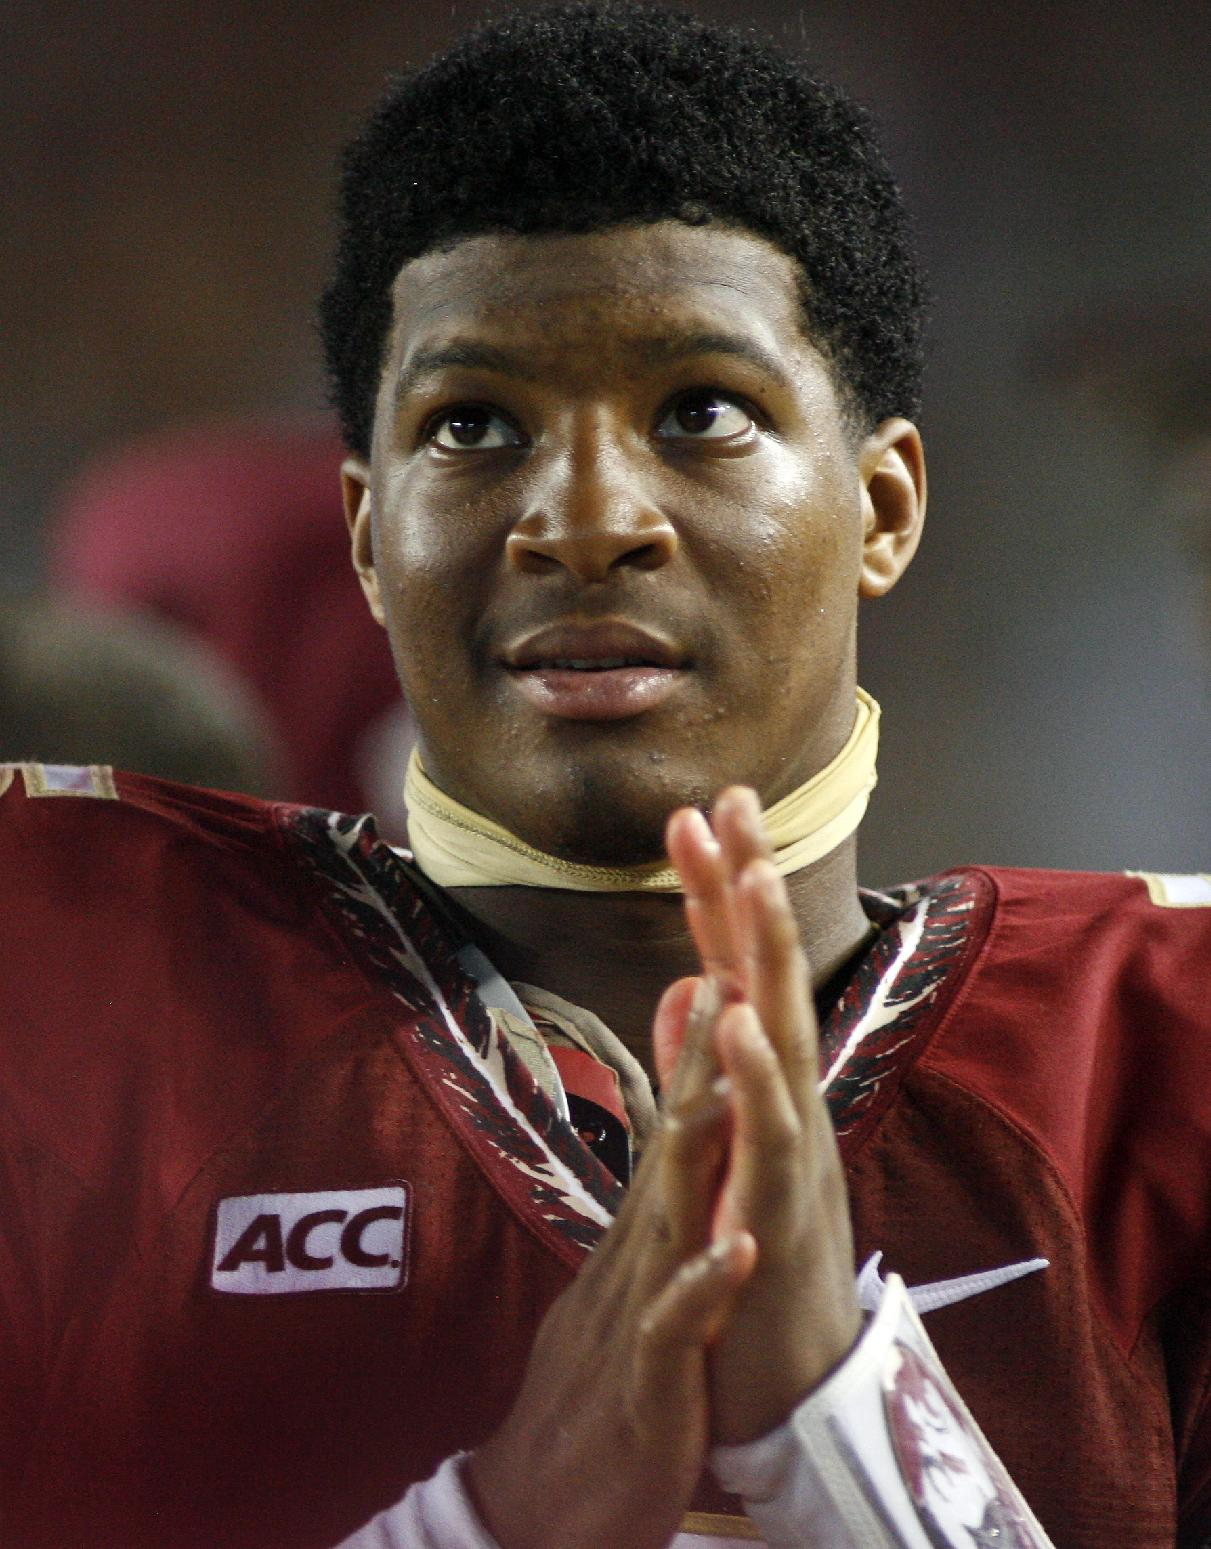 In this Sept. 21, 2013, file photo, Florida State quarterback Jameis Winston watches from the sidelines during the second half of an NCAA college football game against Bethune-Cookman in Tallahassee, Fla. Winston is under investigation in an alleged sexual assault reported nearly a nearly a year ago, the university and Winston's attorney confirmed on Wednesday, Nov. 13, 2013